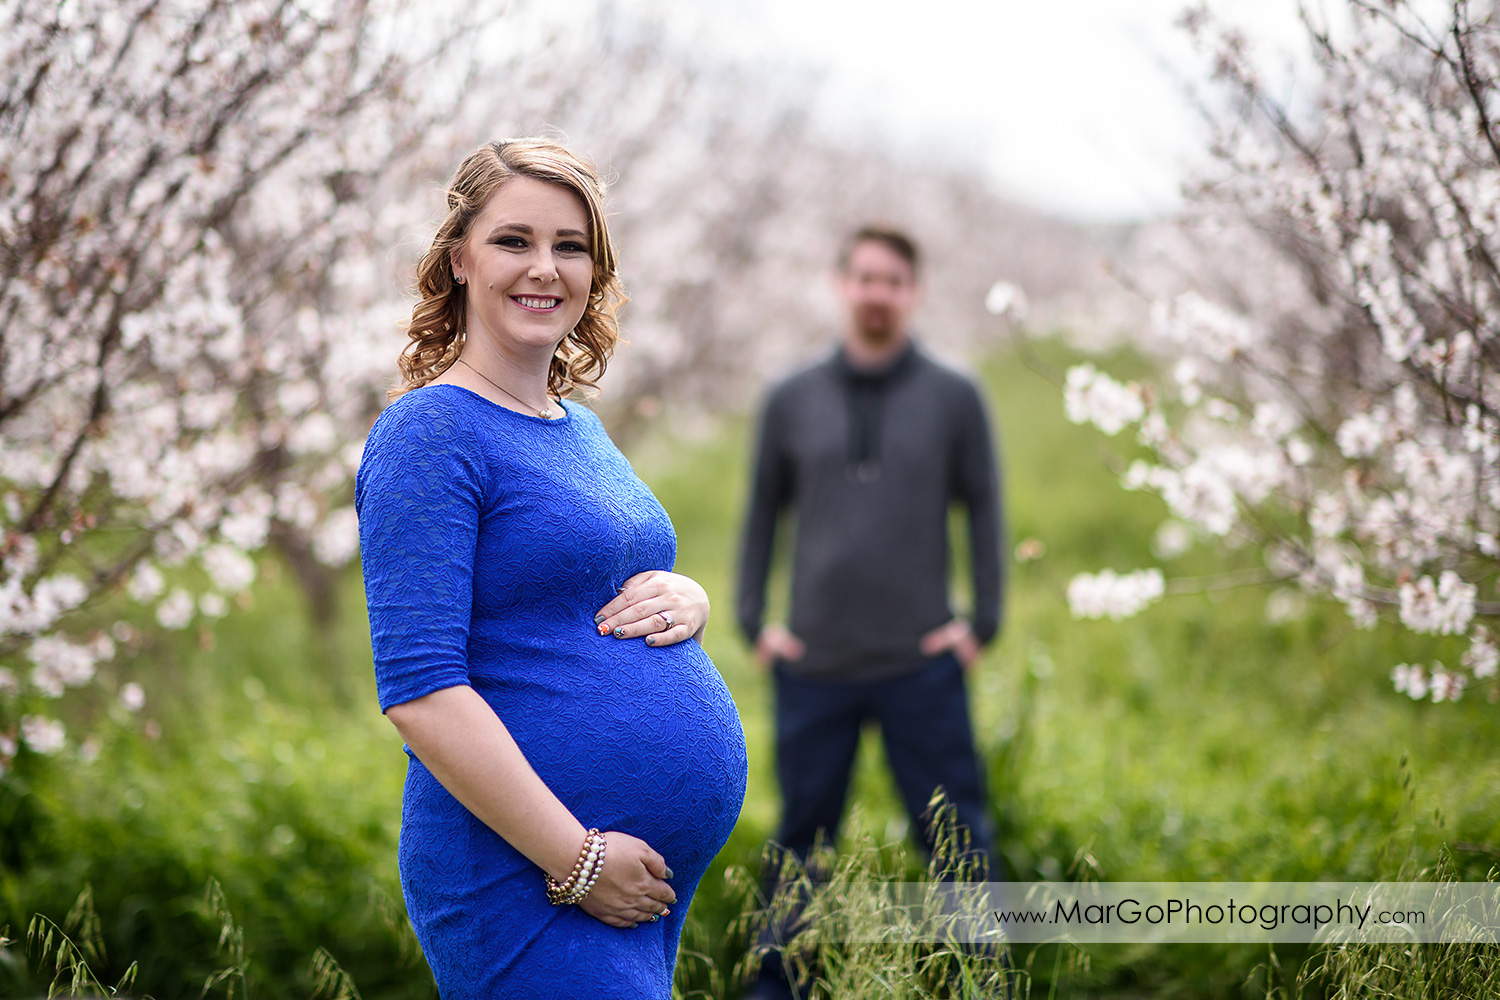 couple maternity session, focus on pregnant woman, Tracy orchard